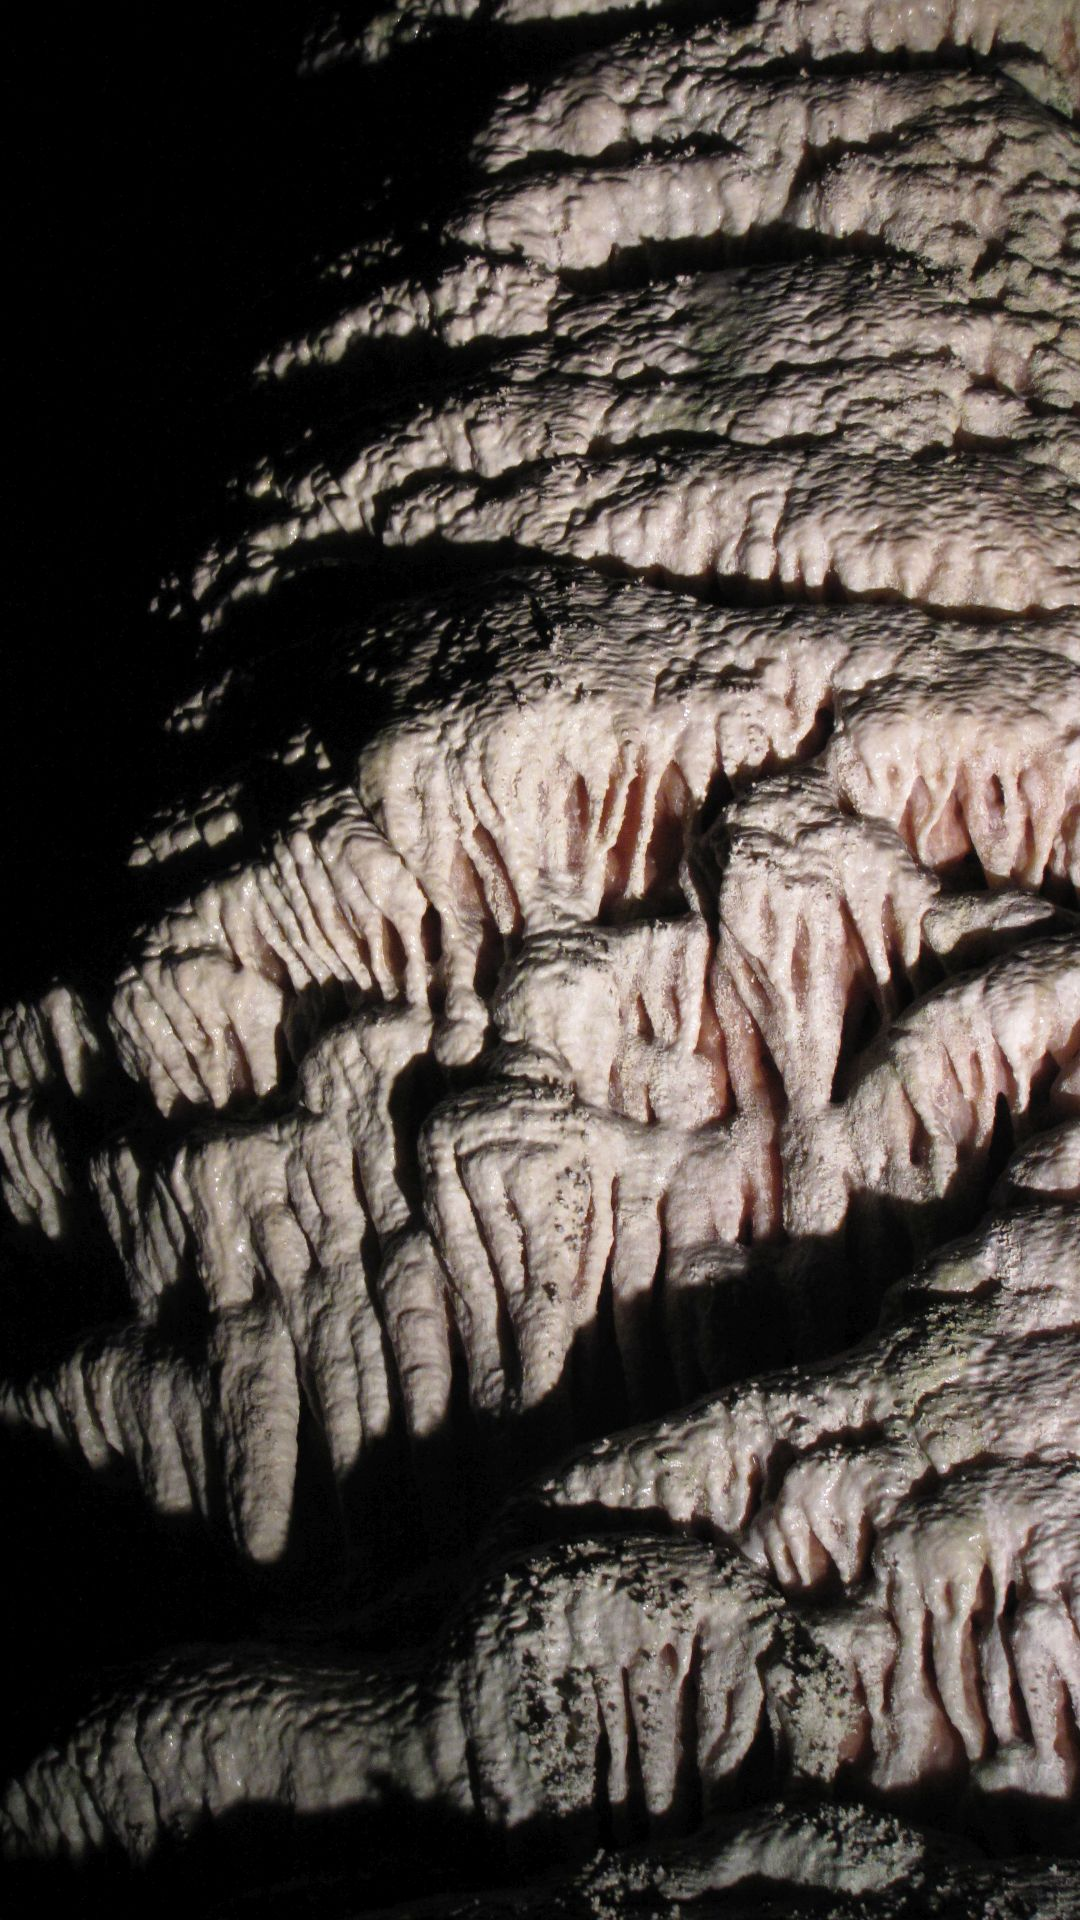 Carlsbad, NM, USA - tricky to get photos but the caverns here were astonishing